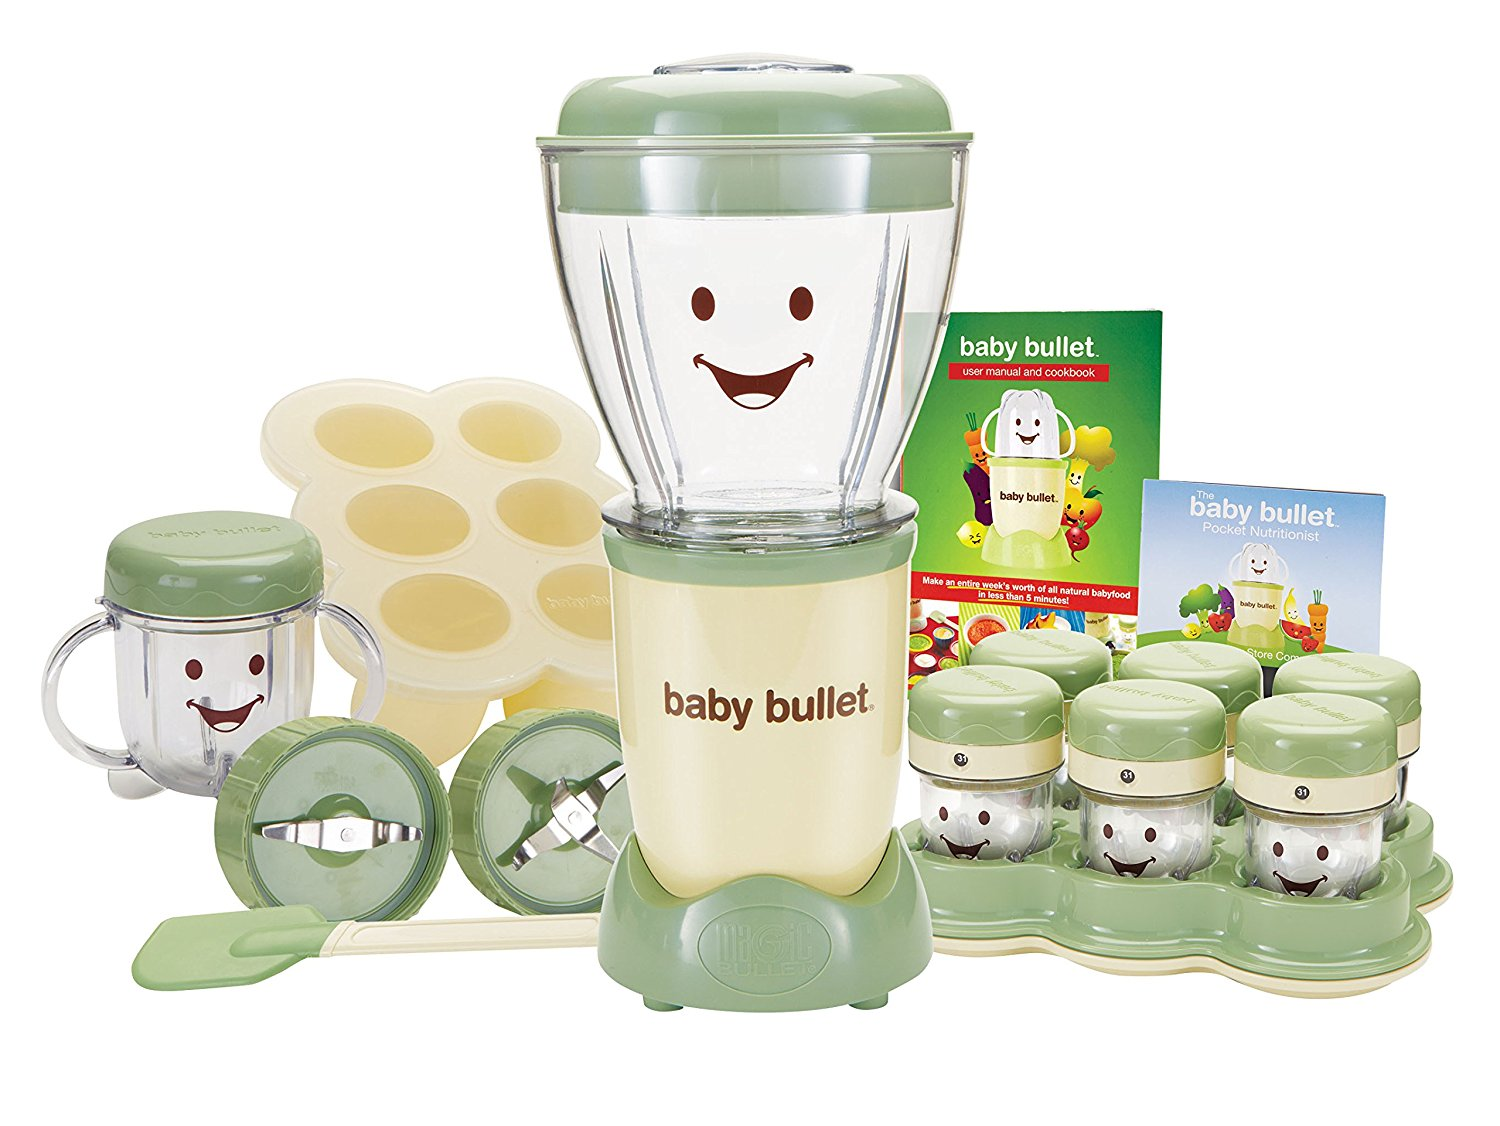 Magic Bullet Baby Bullet Baby Care System - $59.98